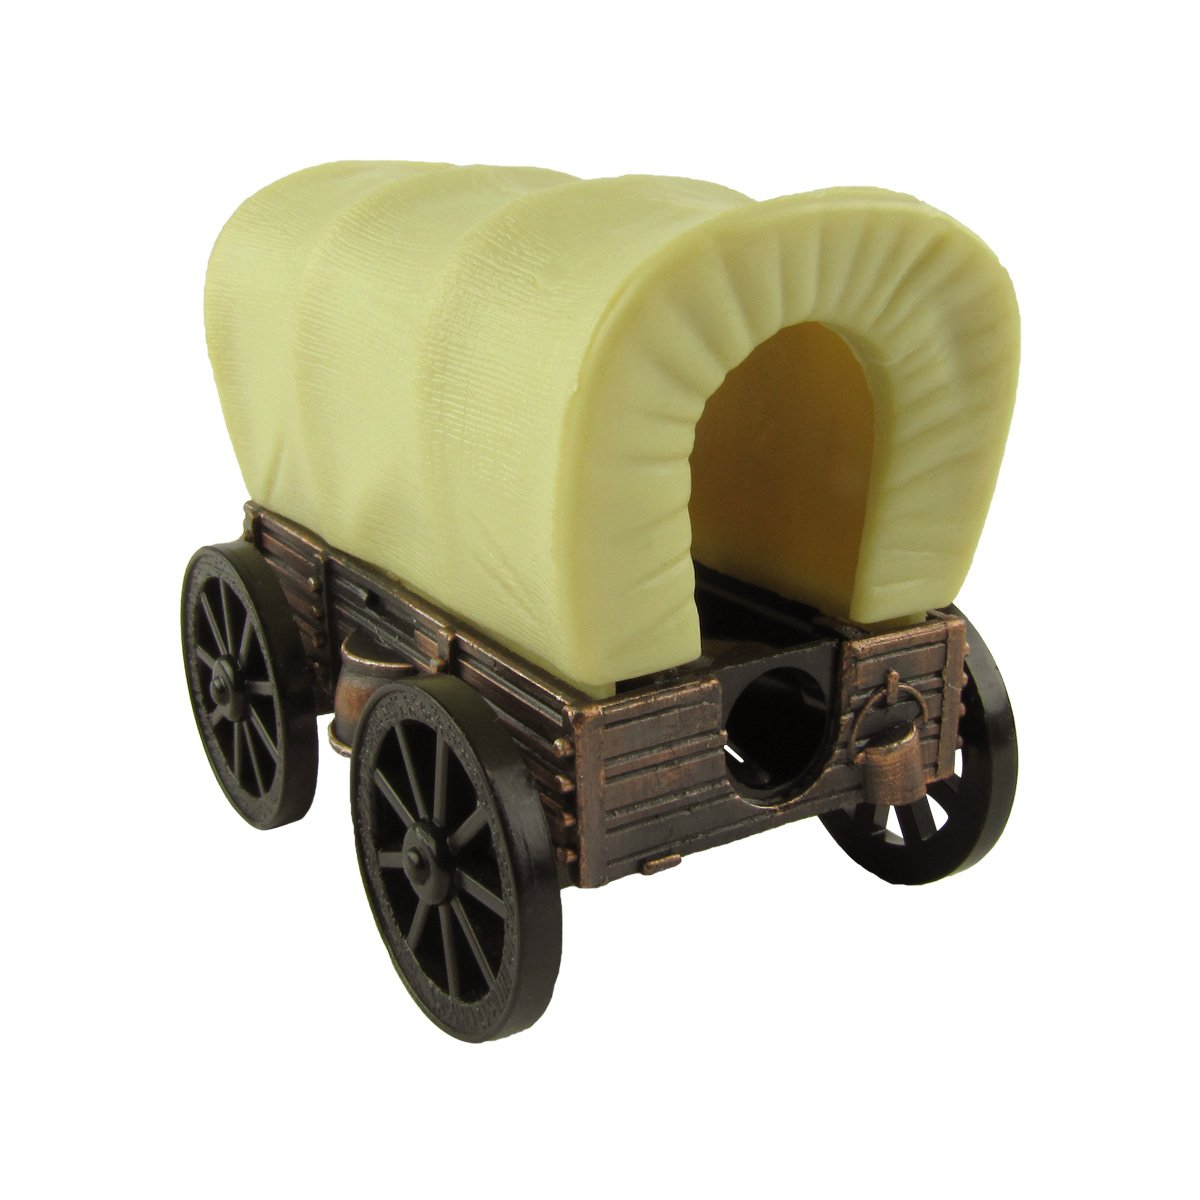 Amazon.com: Miniature Covered Wagon Die Cast Novelty Toy Bronze ...